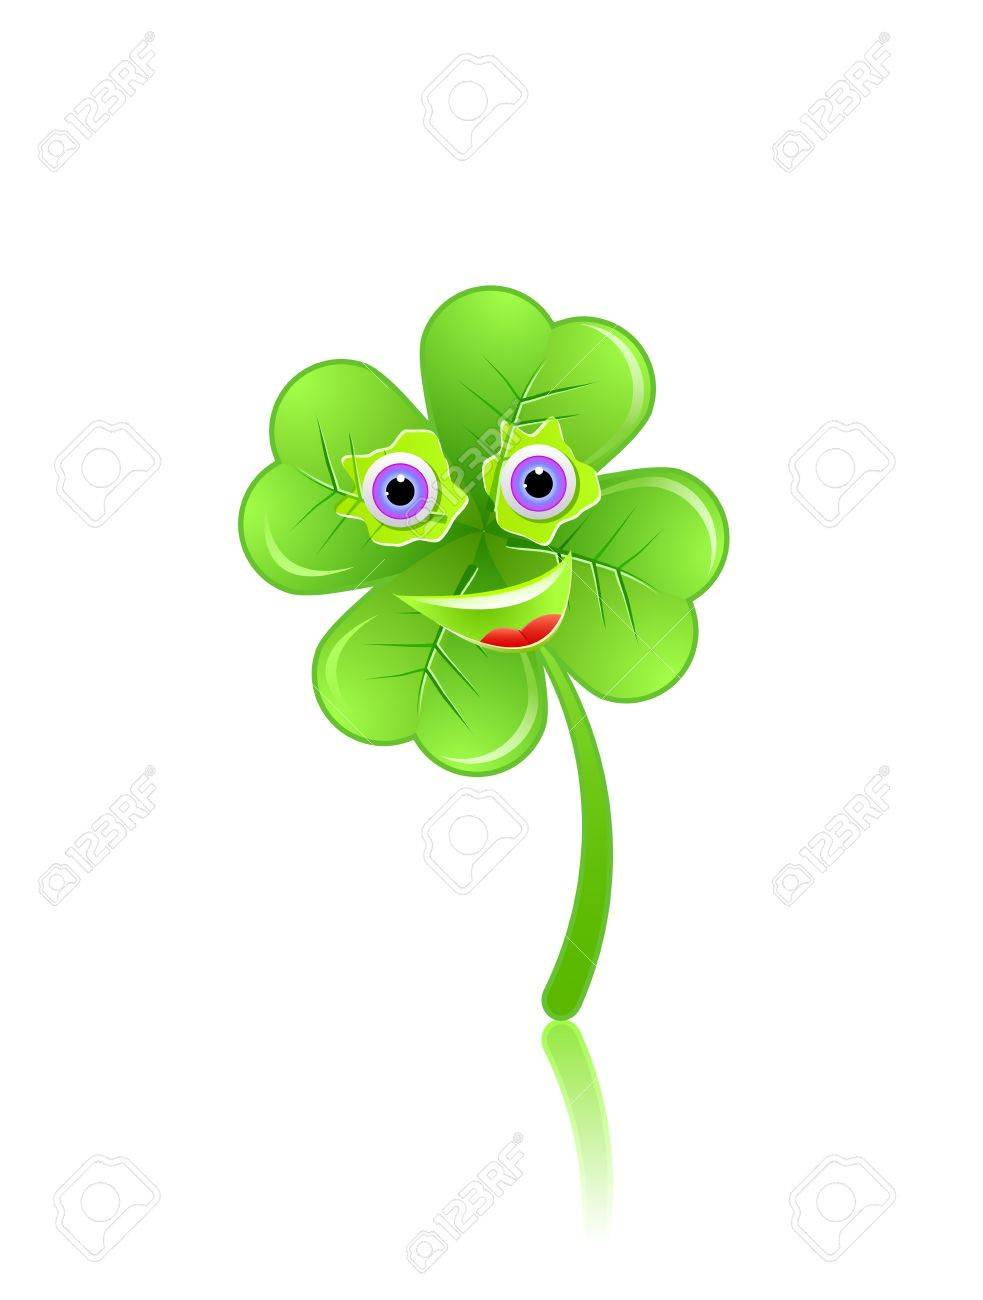 Green Shamrock Face With Eyes and Smile. Stock Vector - 11898009